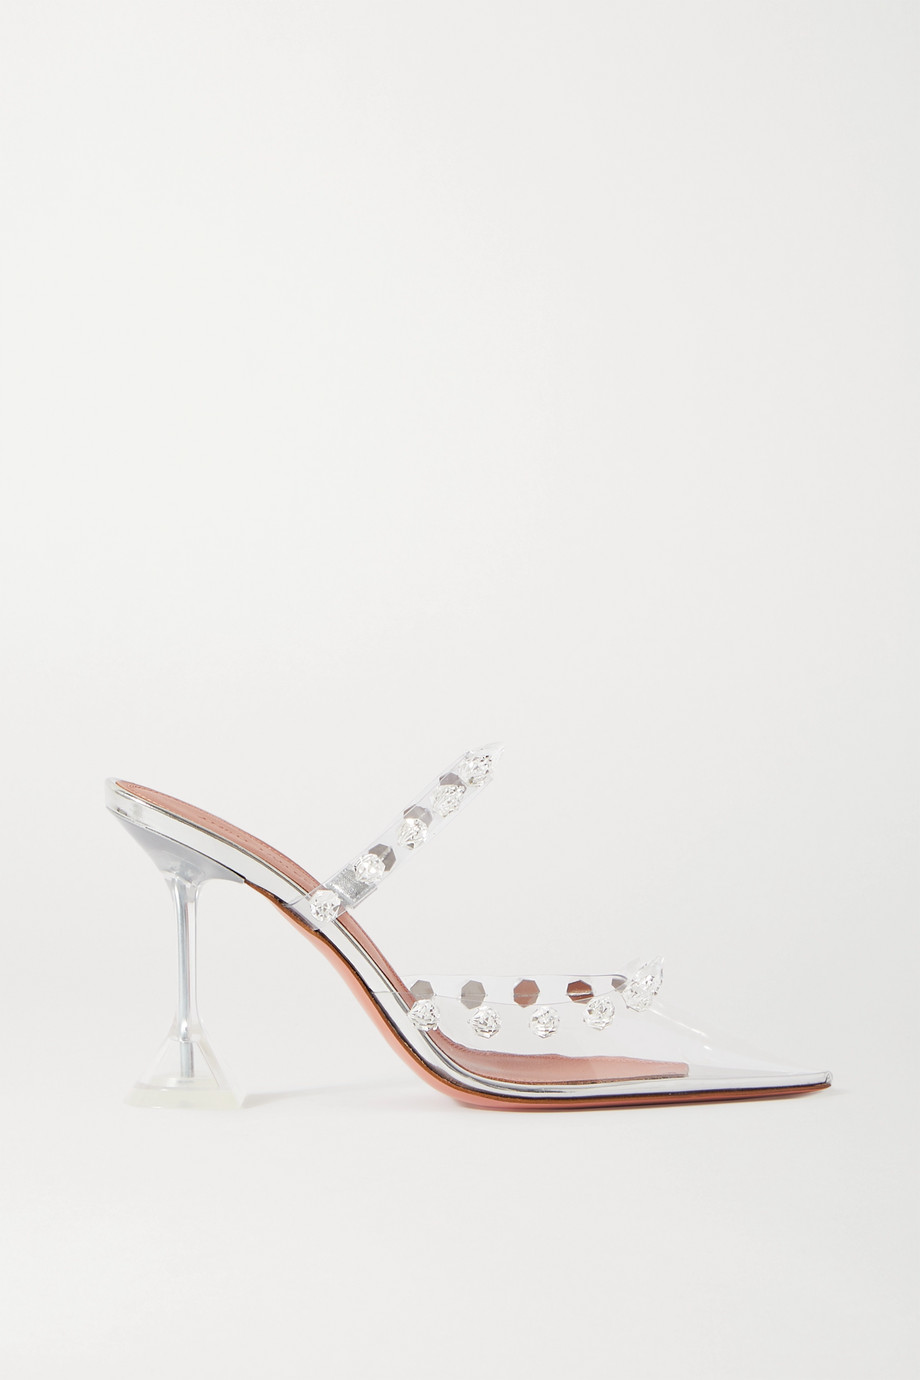 Amina Muaddi Julia crystal-embellished PVC and metallic leather mules